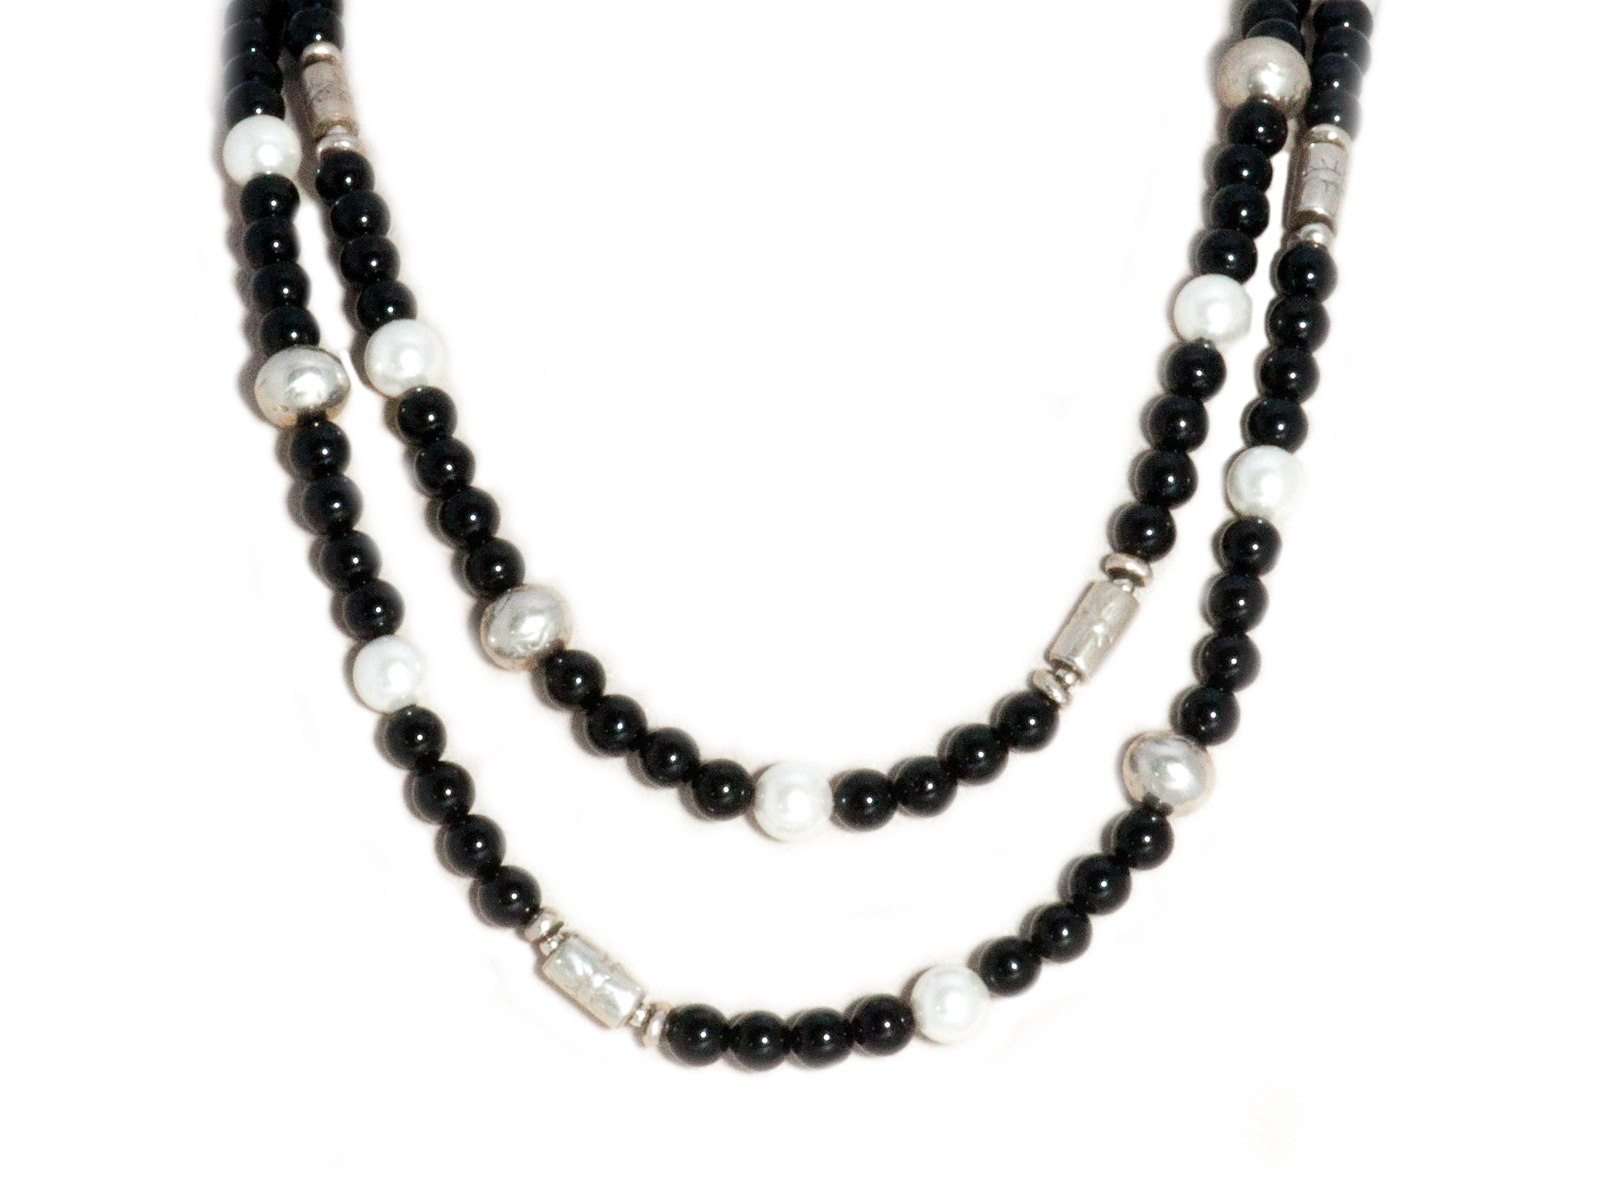 Onyx Pearl Necklace